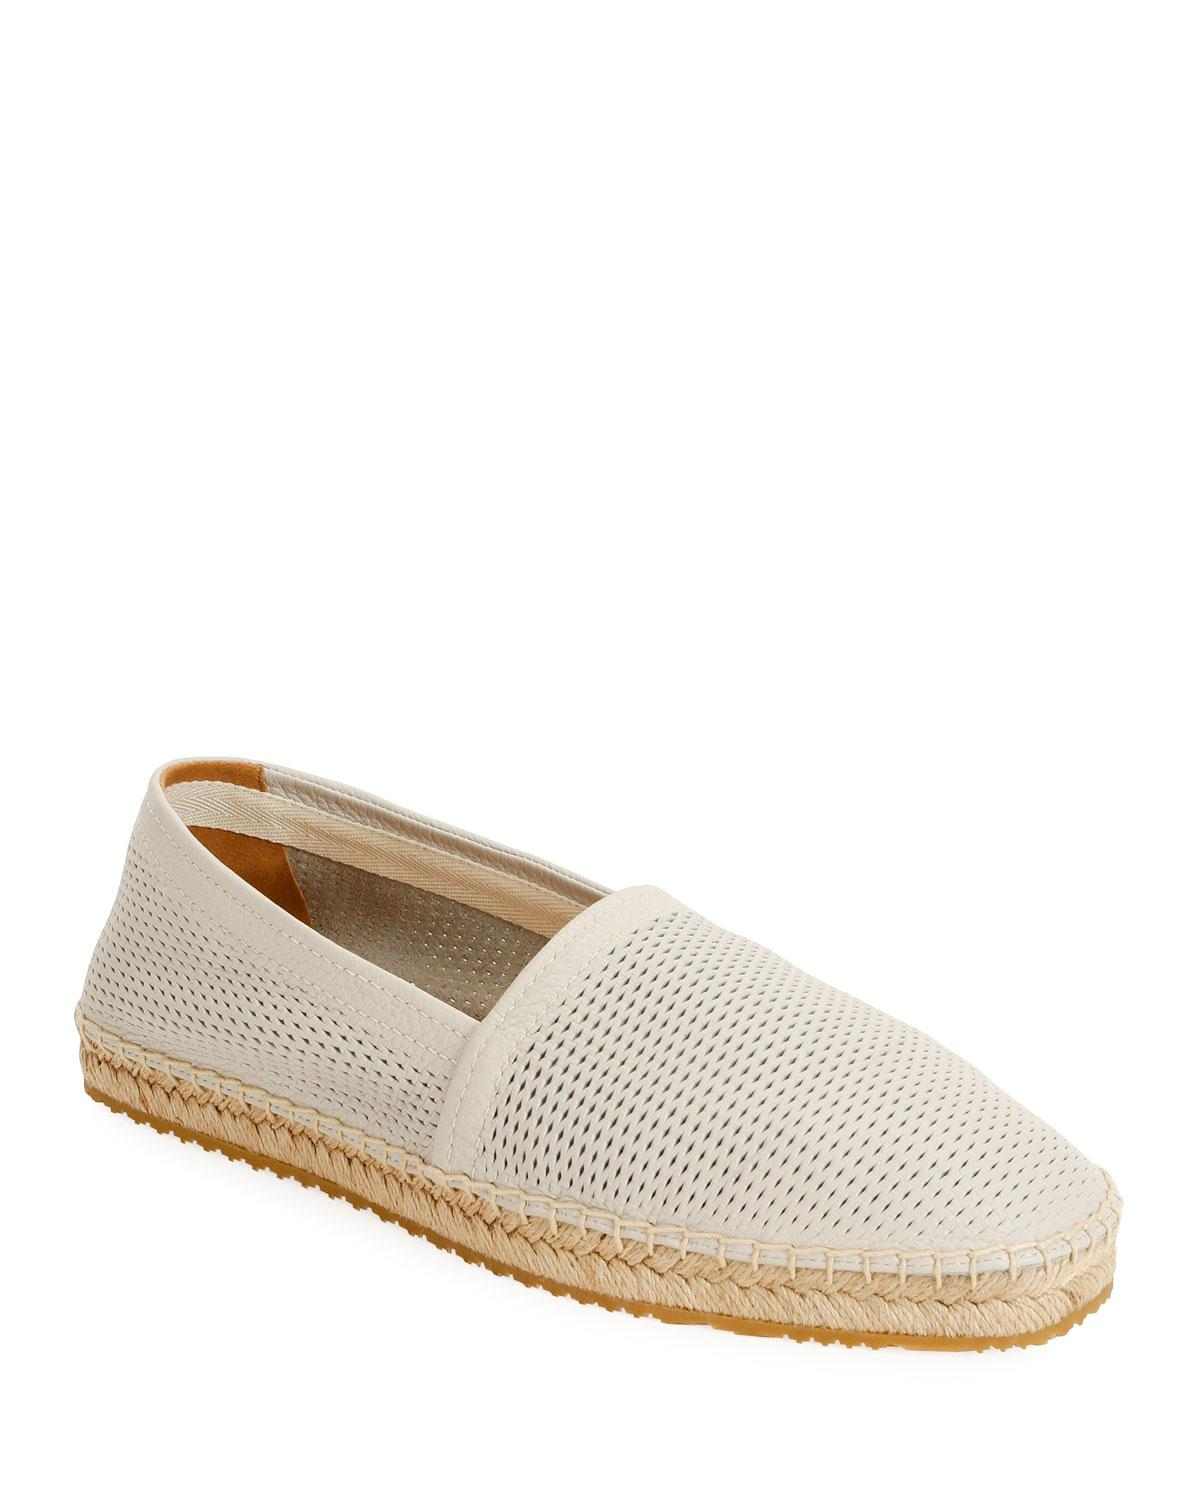 a608e37f6dd2ce Lyst - Giorgio Armani Men s Perforated Mesh Espadrille in White for Men